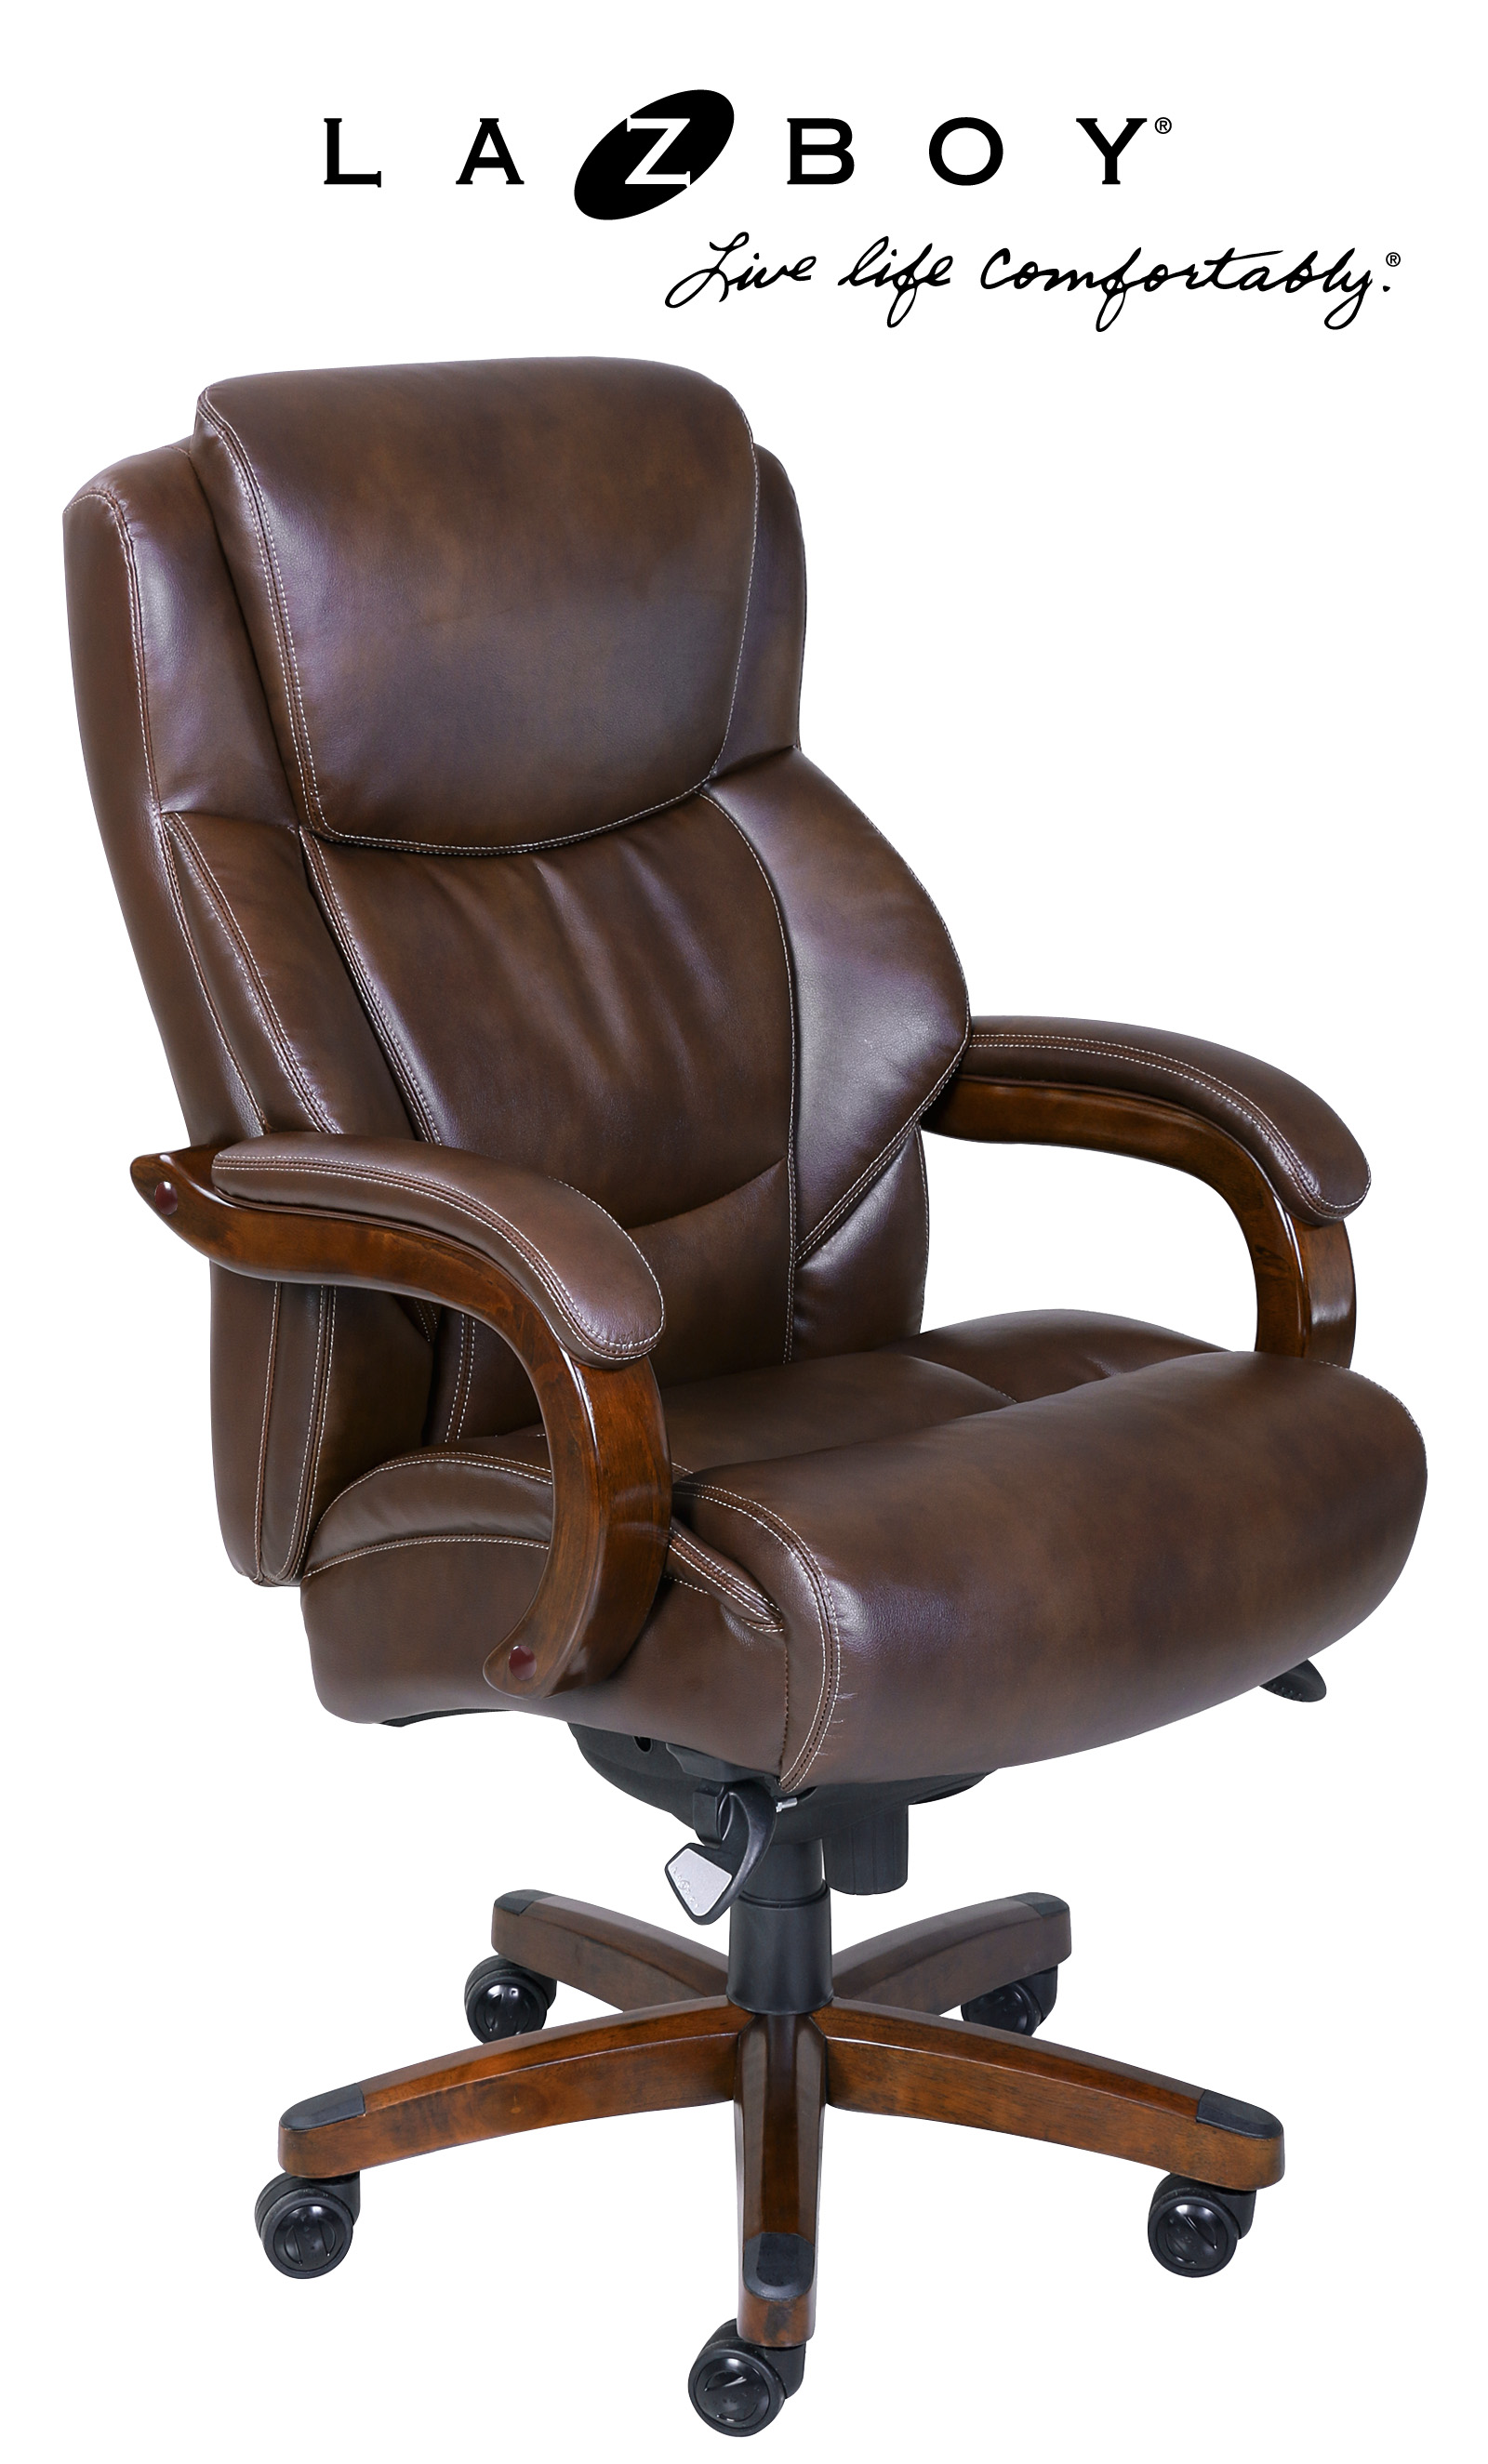 La Z Boy Office Chairs La Z Boy Delano Big And Tall Comfort Core Executive Office